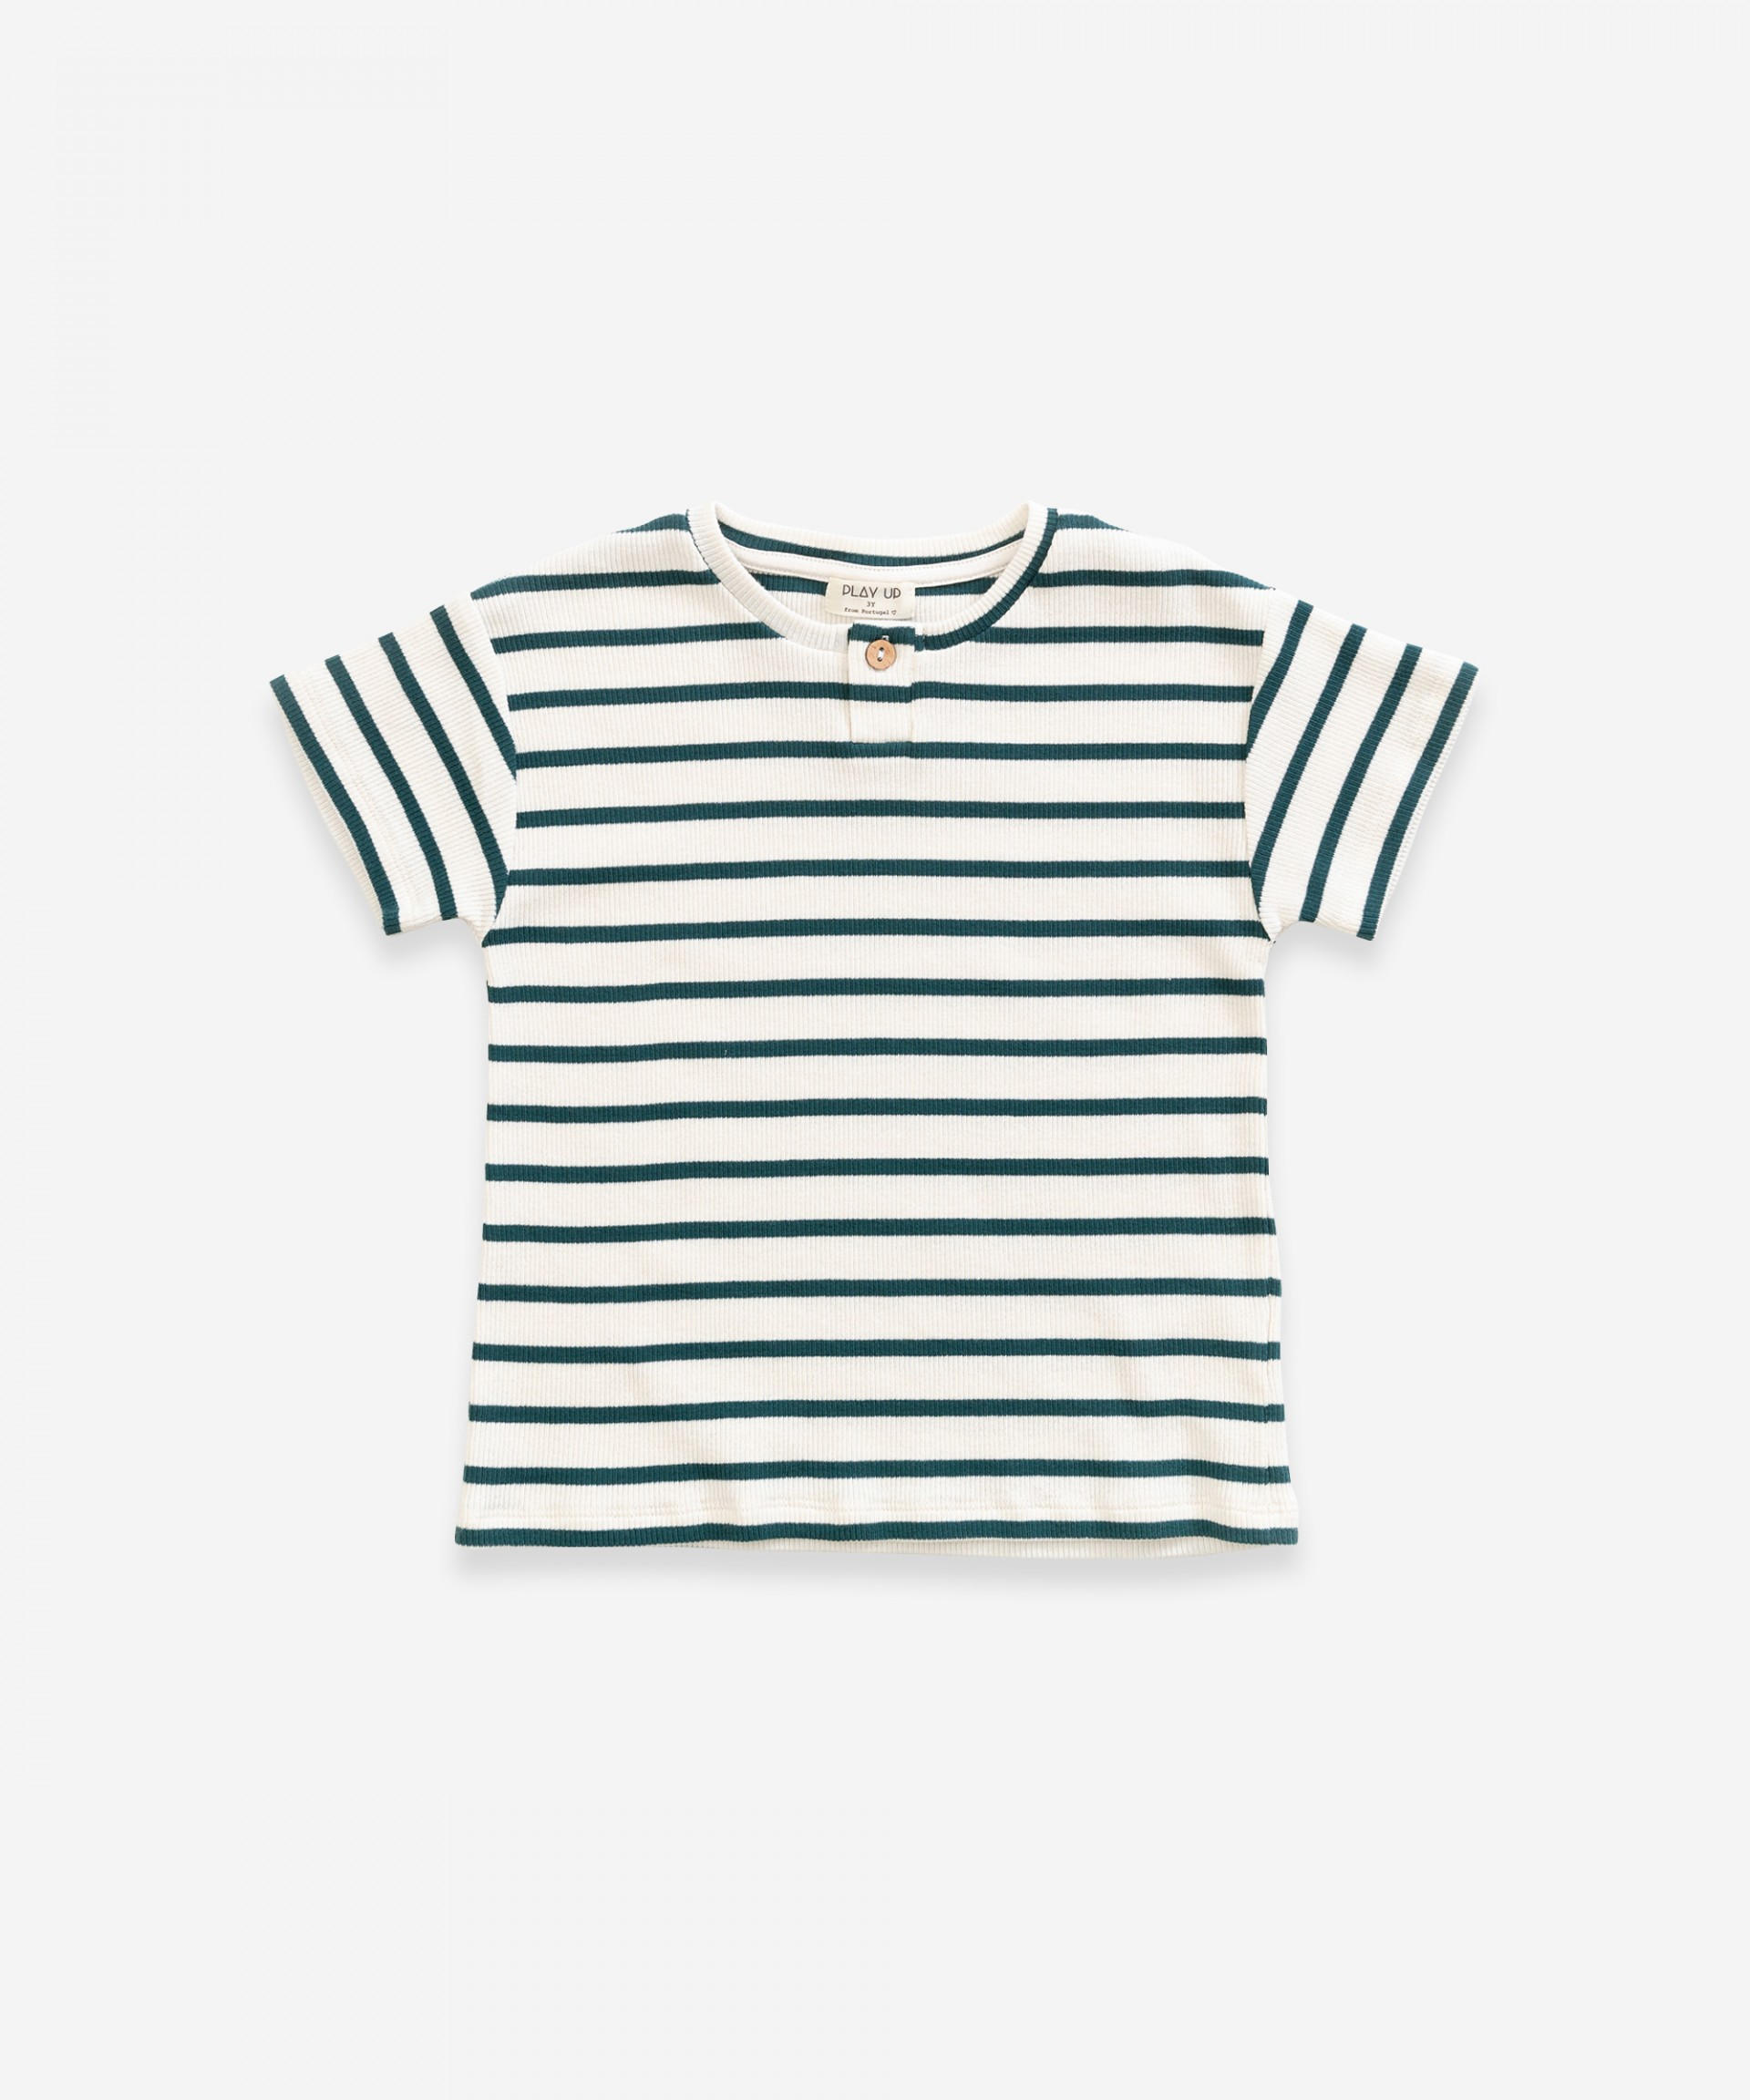 T-shirt in organic cotton with stripes | Weaving